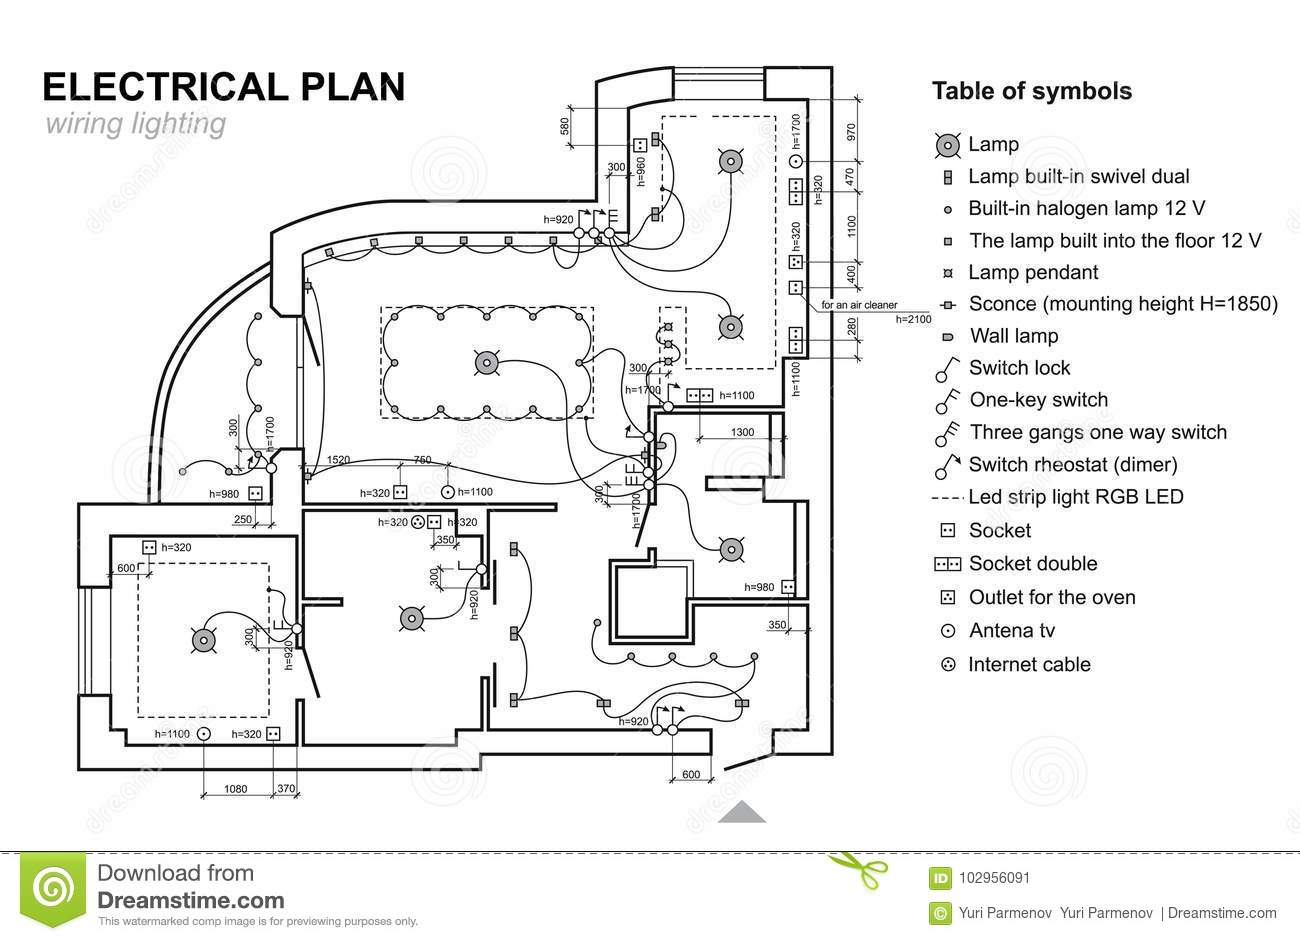 Wrg Electrical Plan Blueprint